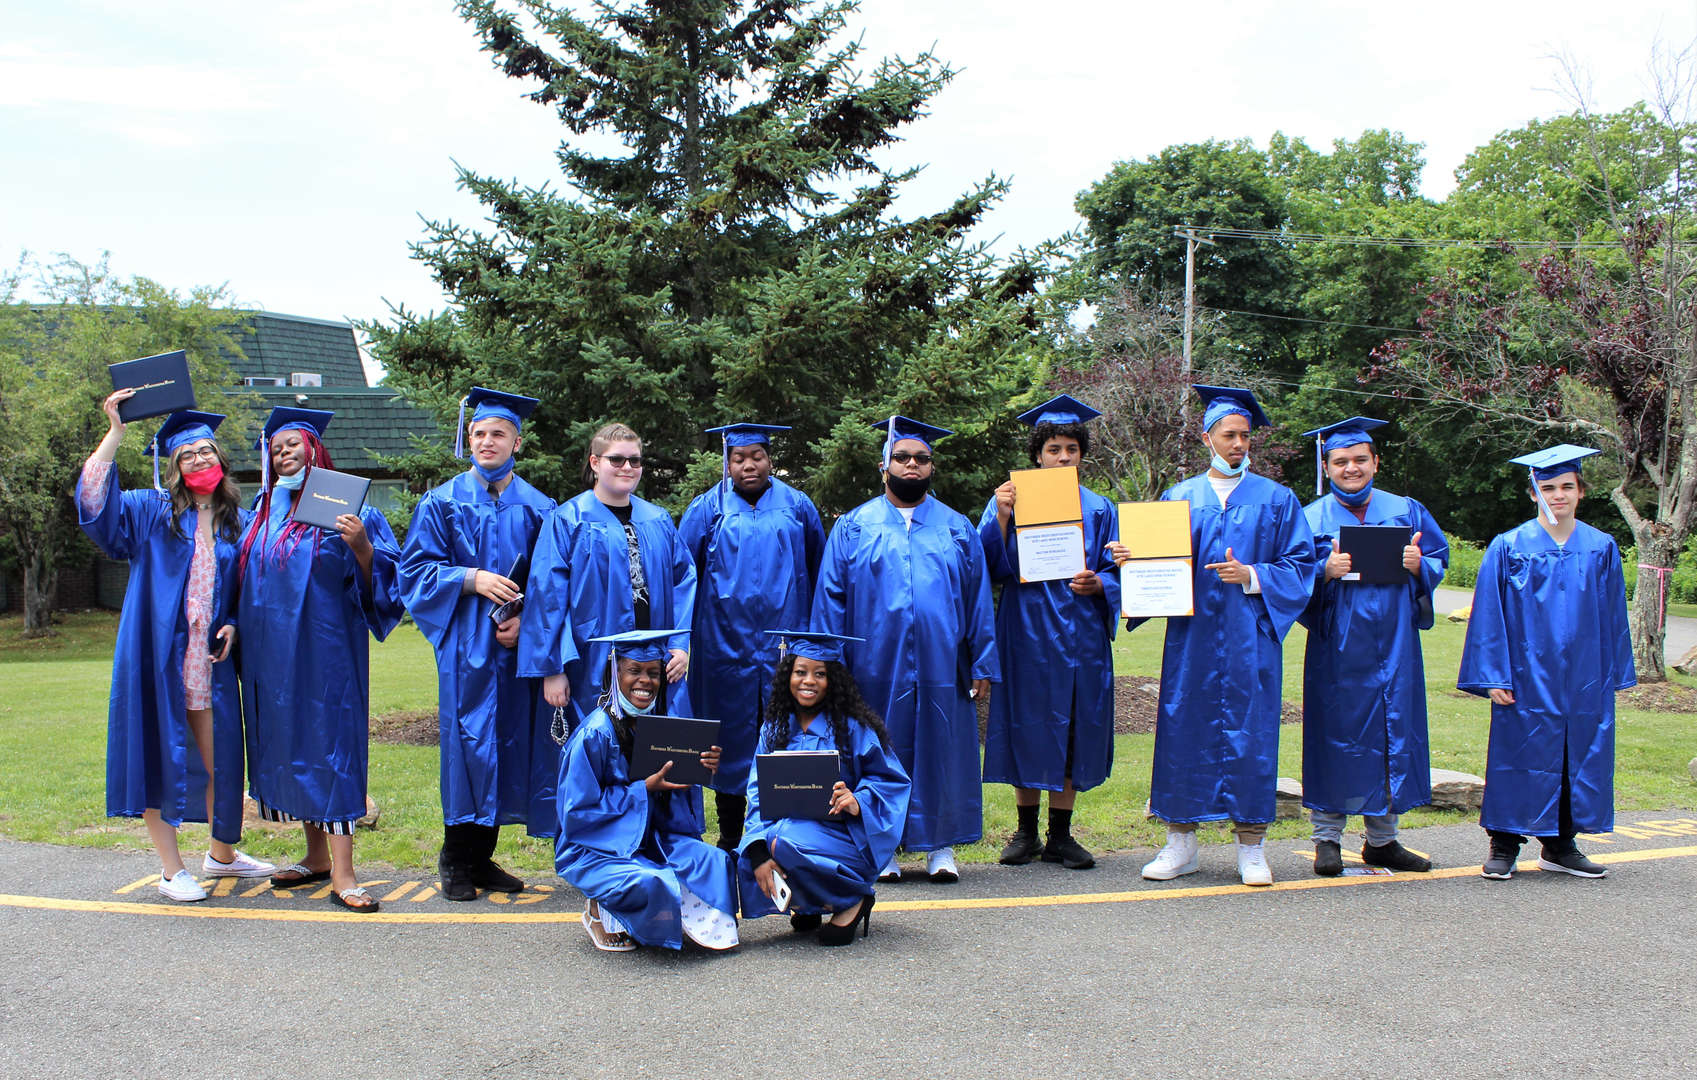 Members of the Class of 2021 pose for a photo after graduating.